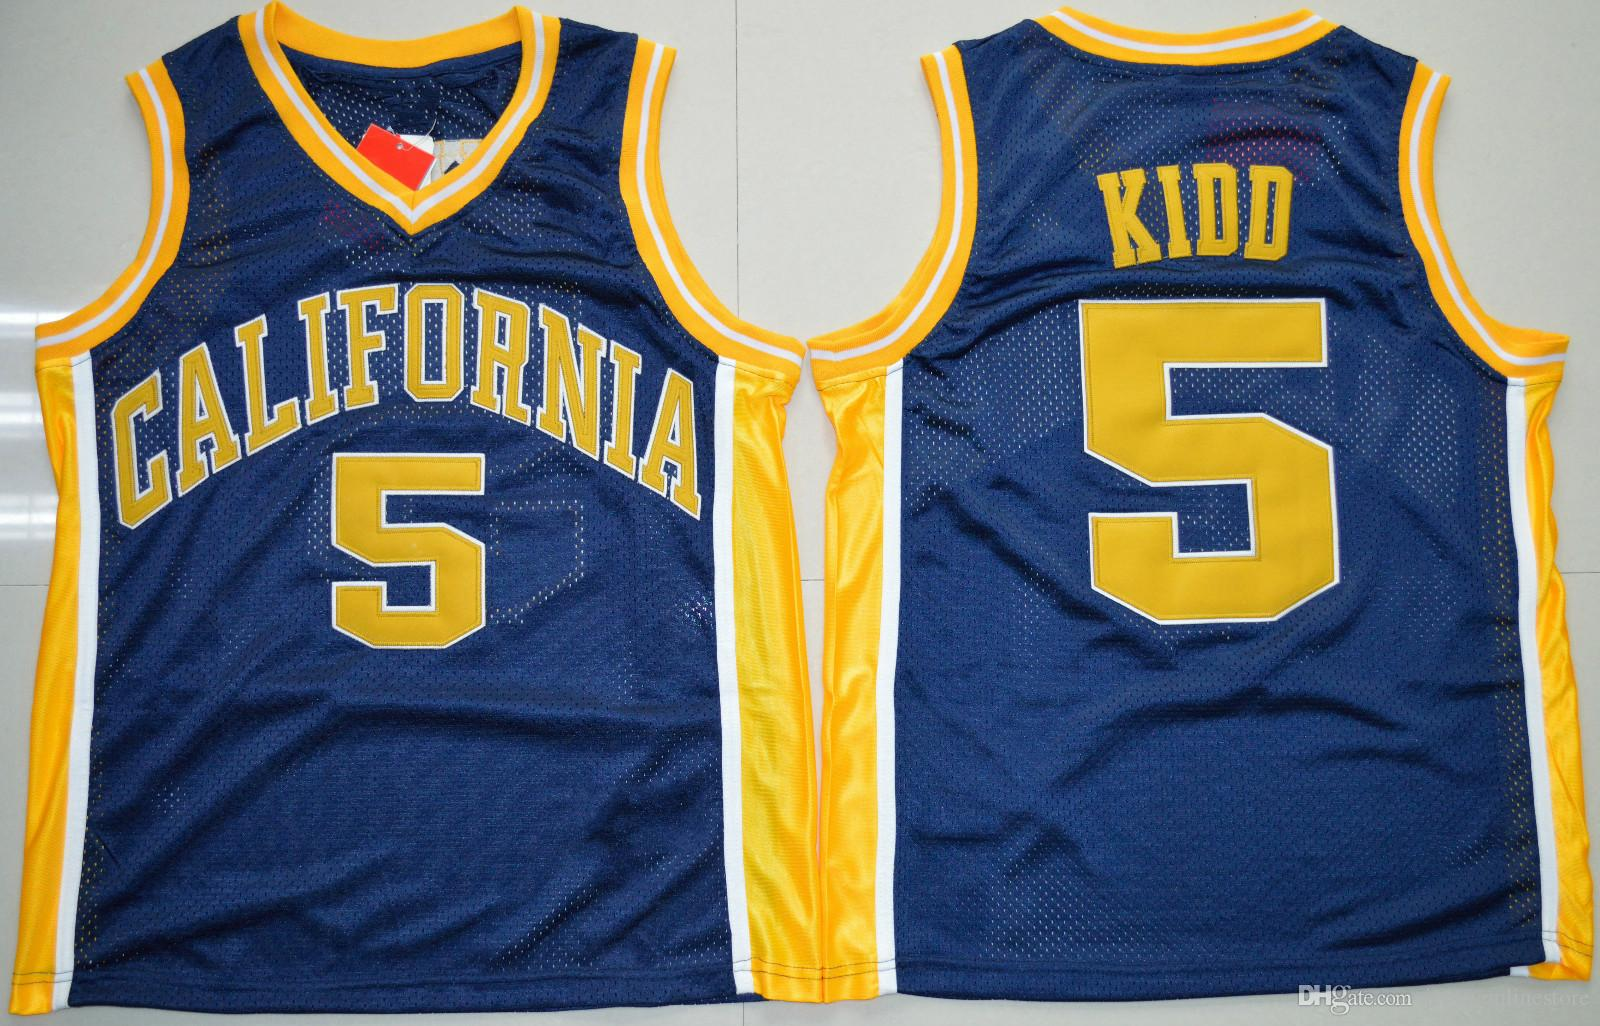 on sale 206dd 5783f Wholesale Men California Golden Bears #5 Jason Kidd Jersey Navy Blue  Embroidery Cheap College Basketball Jerseys Stitched